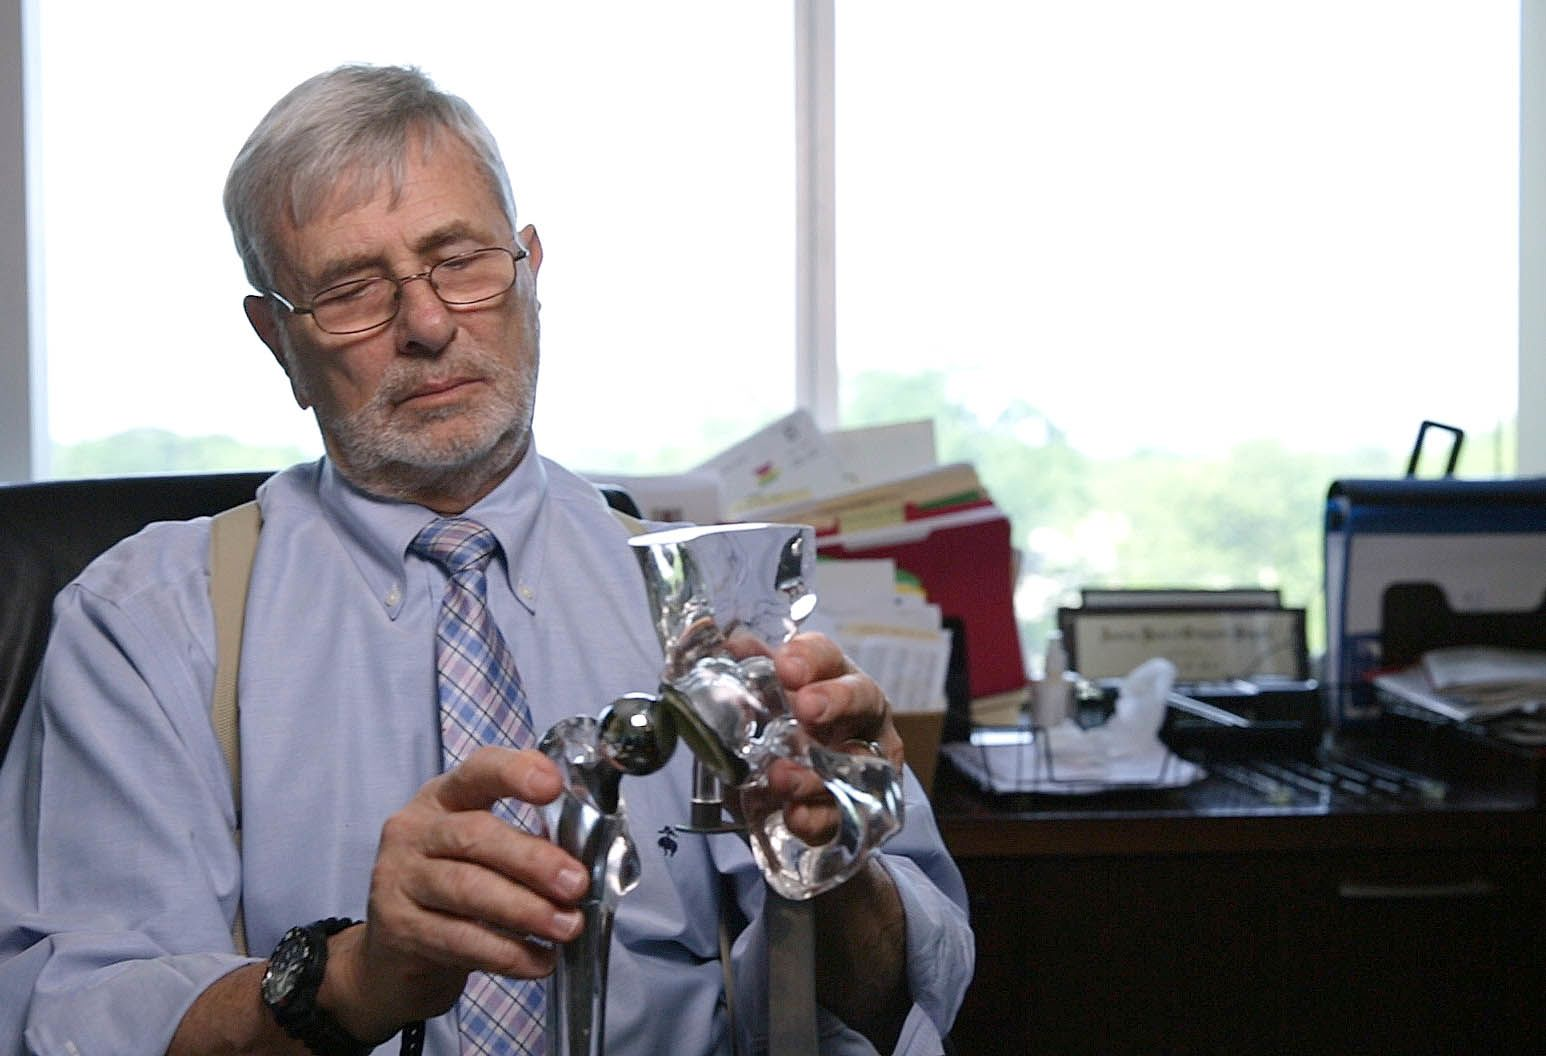 An older man with gray hair, blue shirt, striped tie, and beige suspenders sits in his office playing with a model of a hip bone.